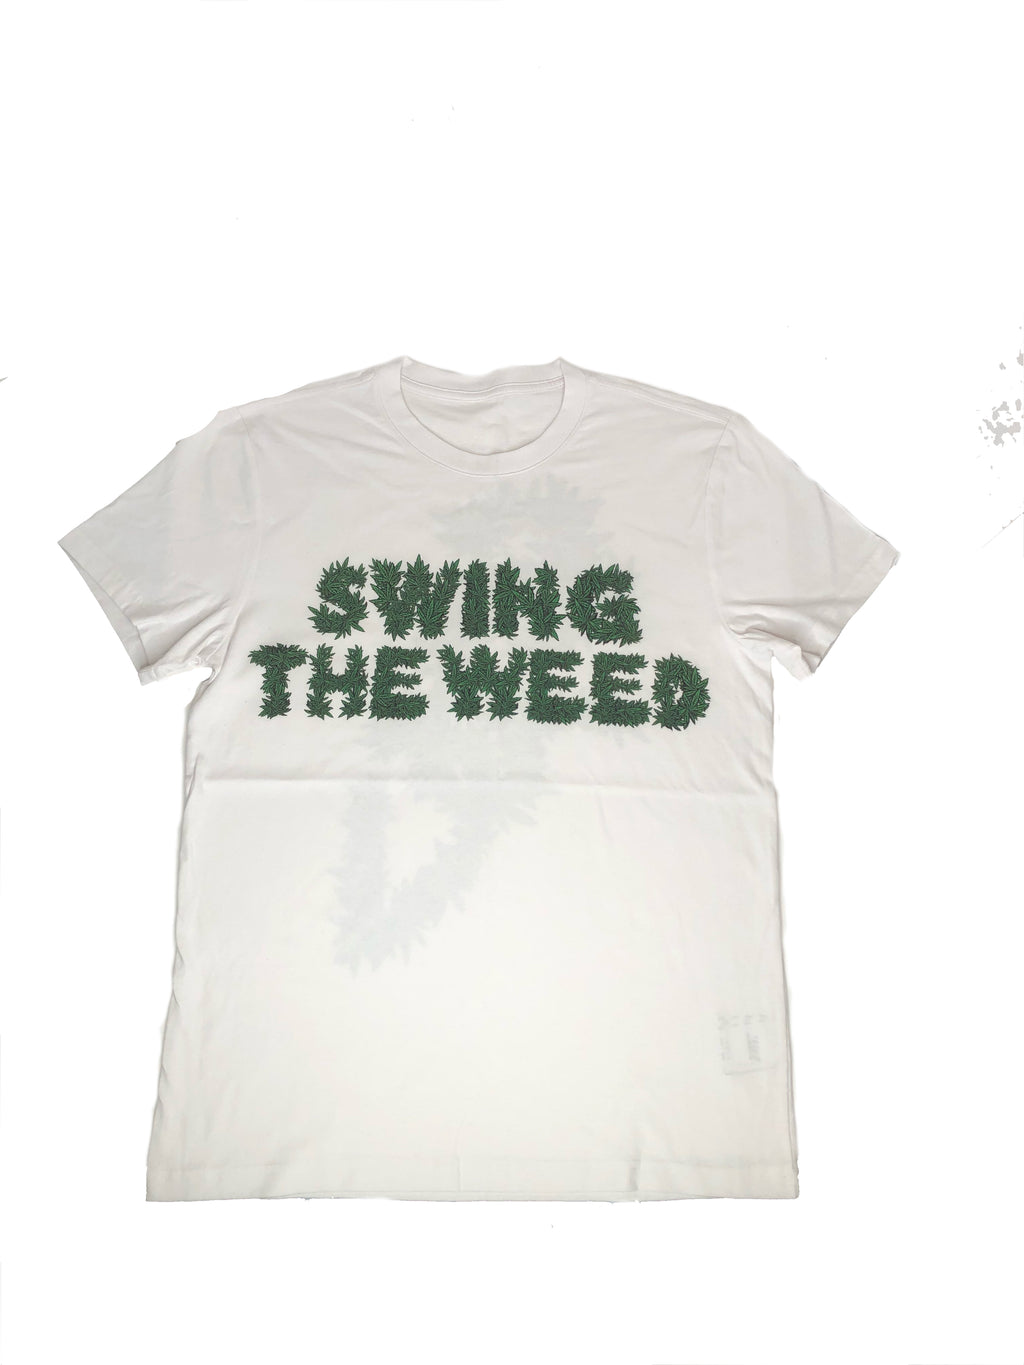 Swing The Weed Tshirt